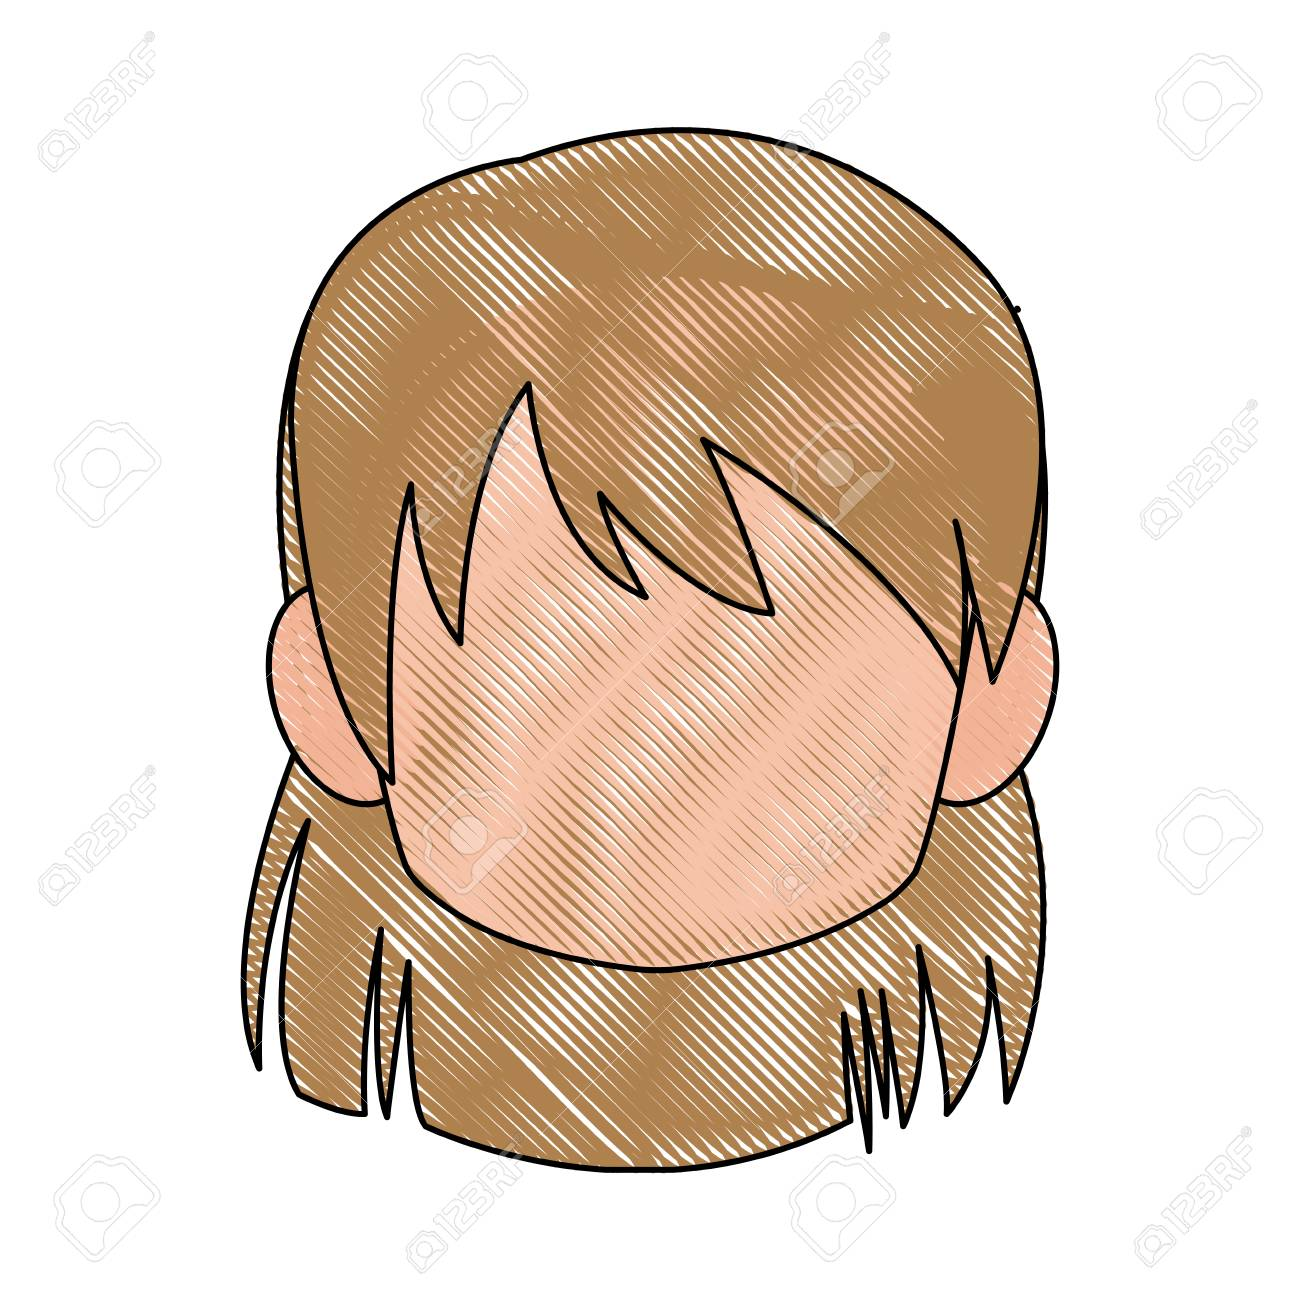 Chibi anime girl avatar contour default vector illustration stock vector 80046101